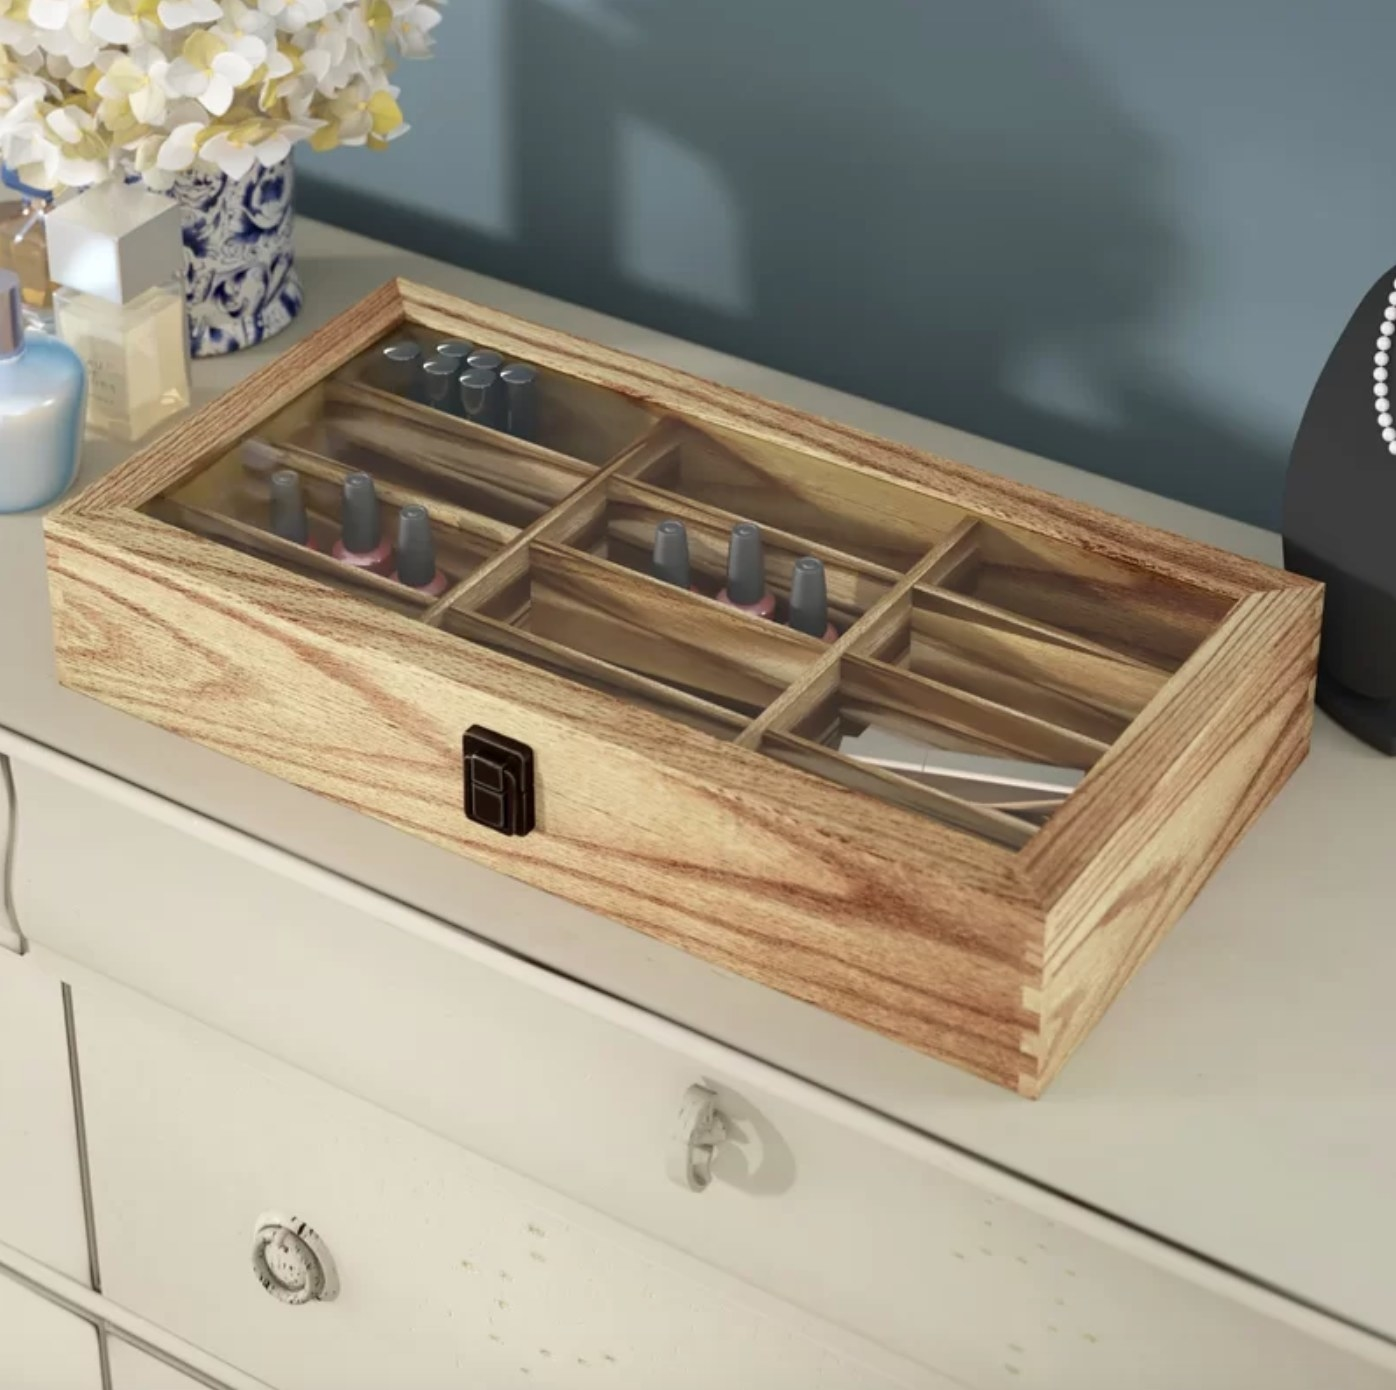 The wooden accessories box